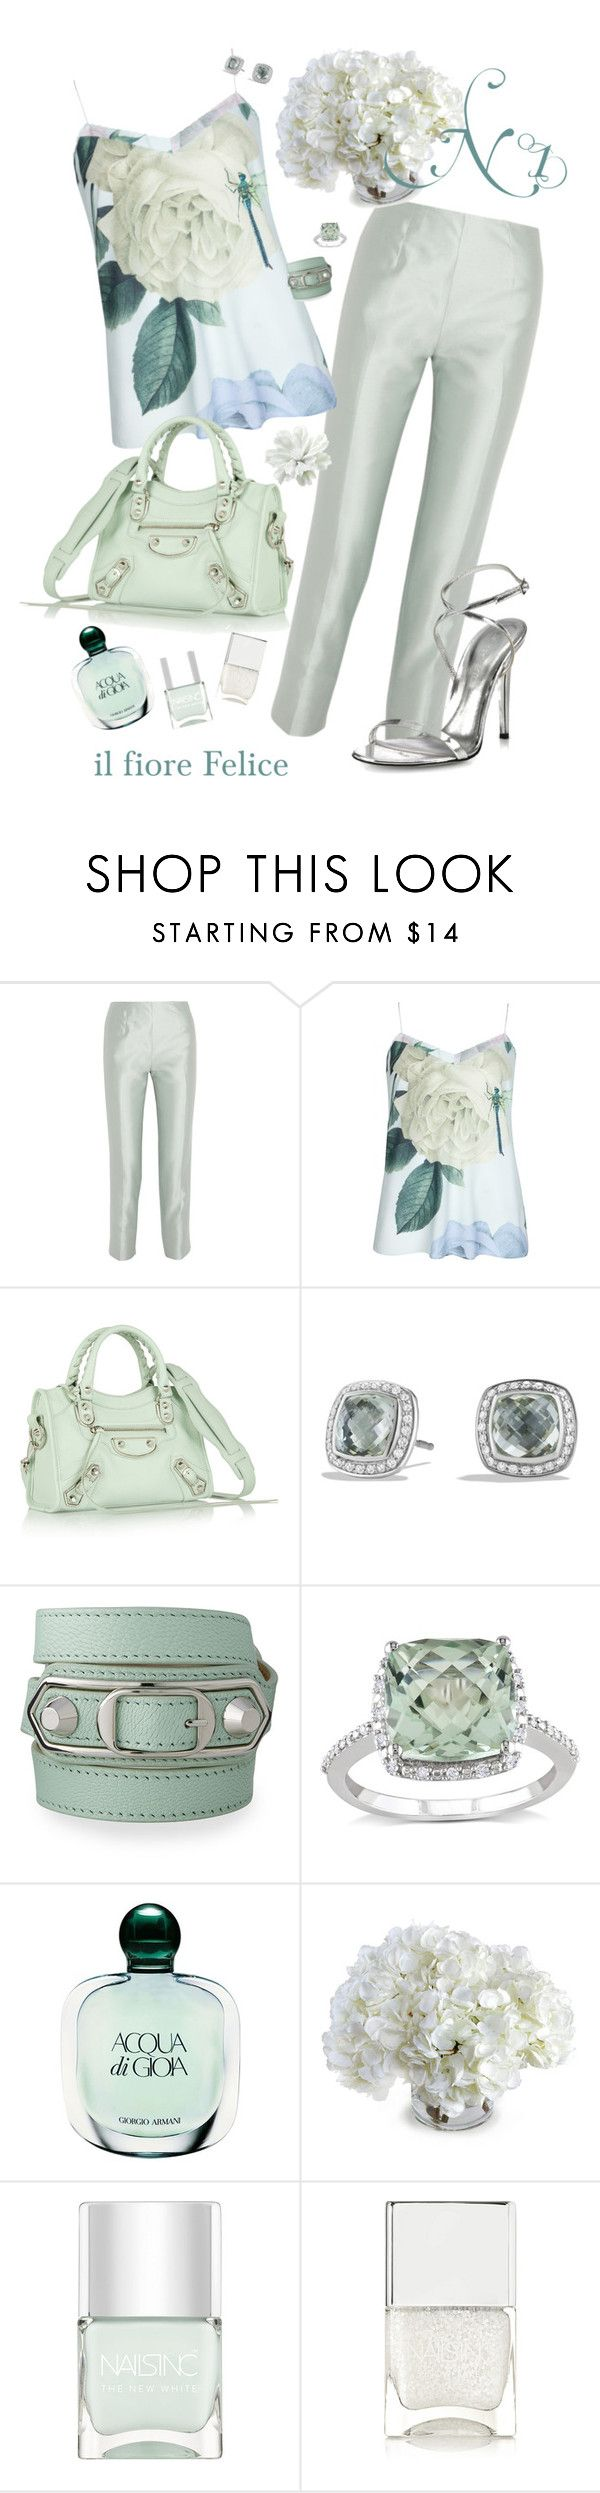 """N°1 Look, Rugiada del Mattino"" by ilfiorefelice ❤ liked on Polyvore featuring Raoul, Ted Baker, Balenciaga, David Yurman, Miadora, Giorgio Armani, New Growth Designs, Nails Inc., Tamara Mellon and Spring"